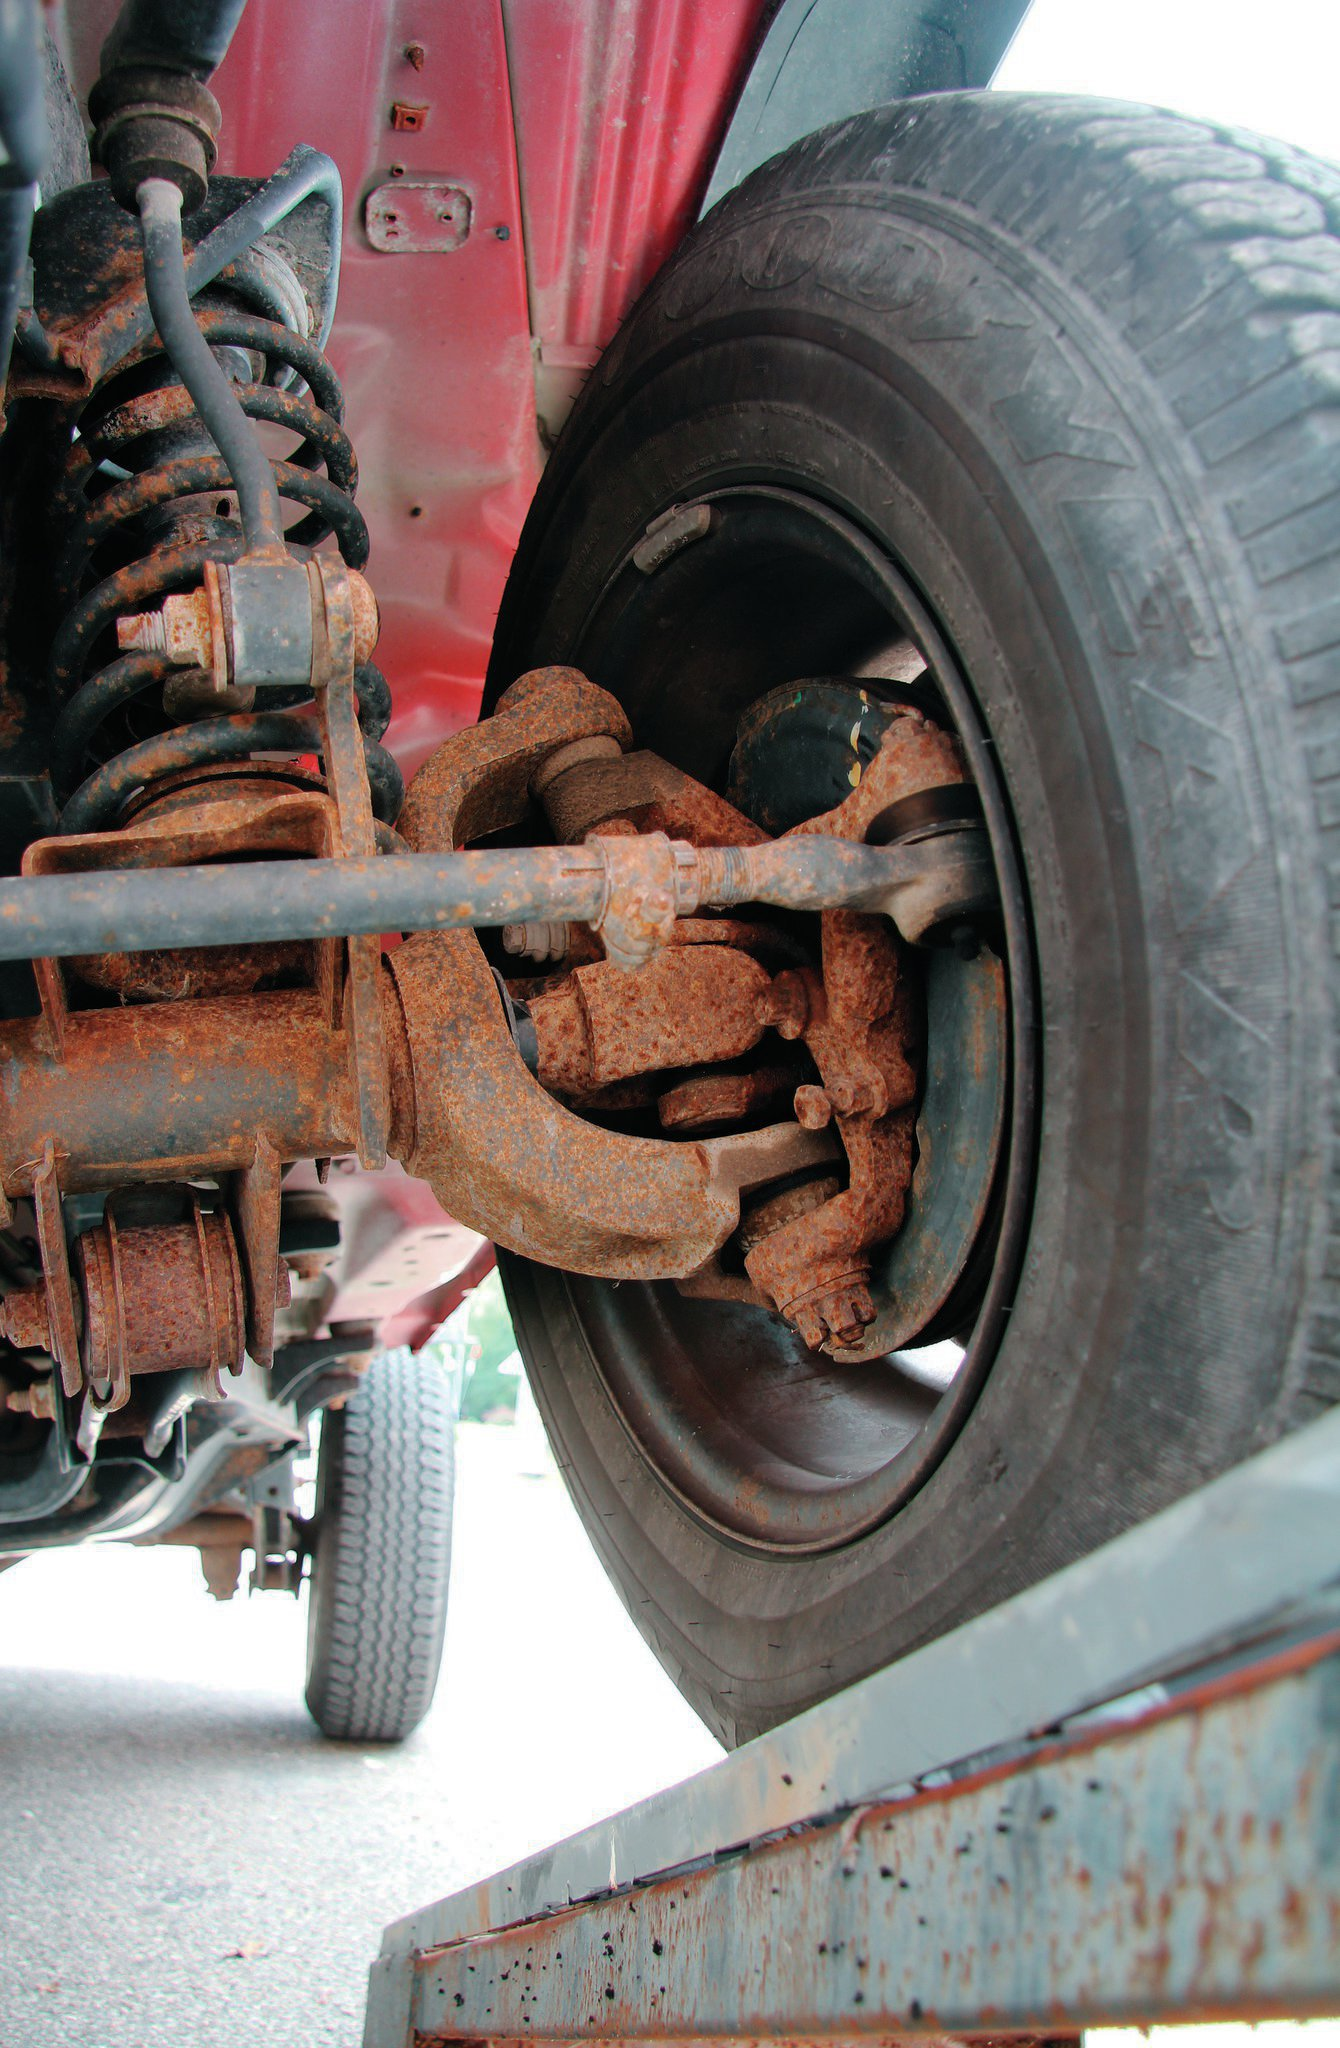 Every TJ, with the exception of the Rubicon, used a low-pinion Dana 30 front axle. Common issues on higher-mileage or wheeled Jeeps tend to be worn axleshaft U-joints and a leaky pinion seal. Both are relatively easy fixes.